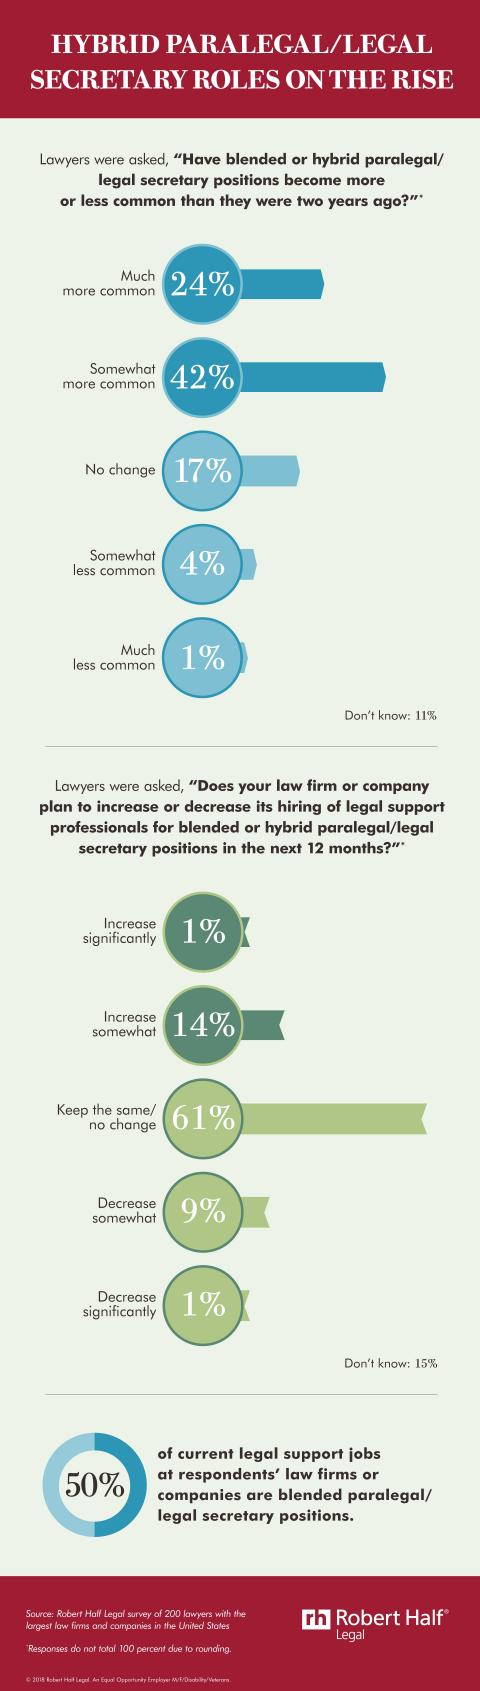 Blended or hybrid paralegal and legal secretary roles are increasing.